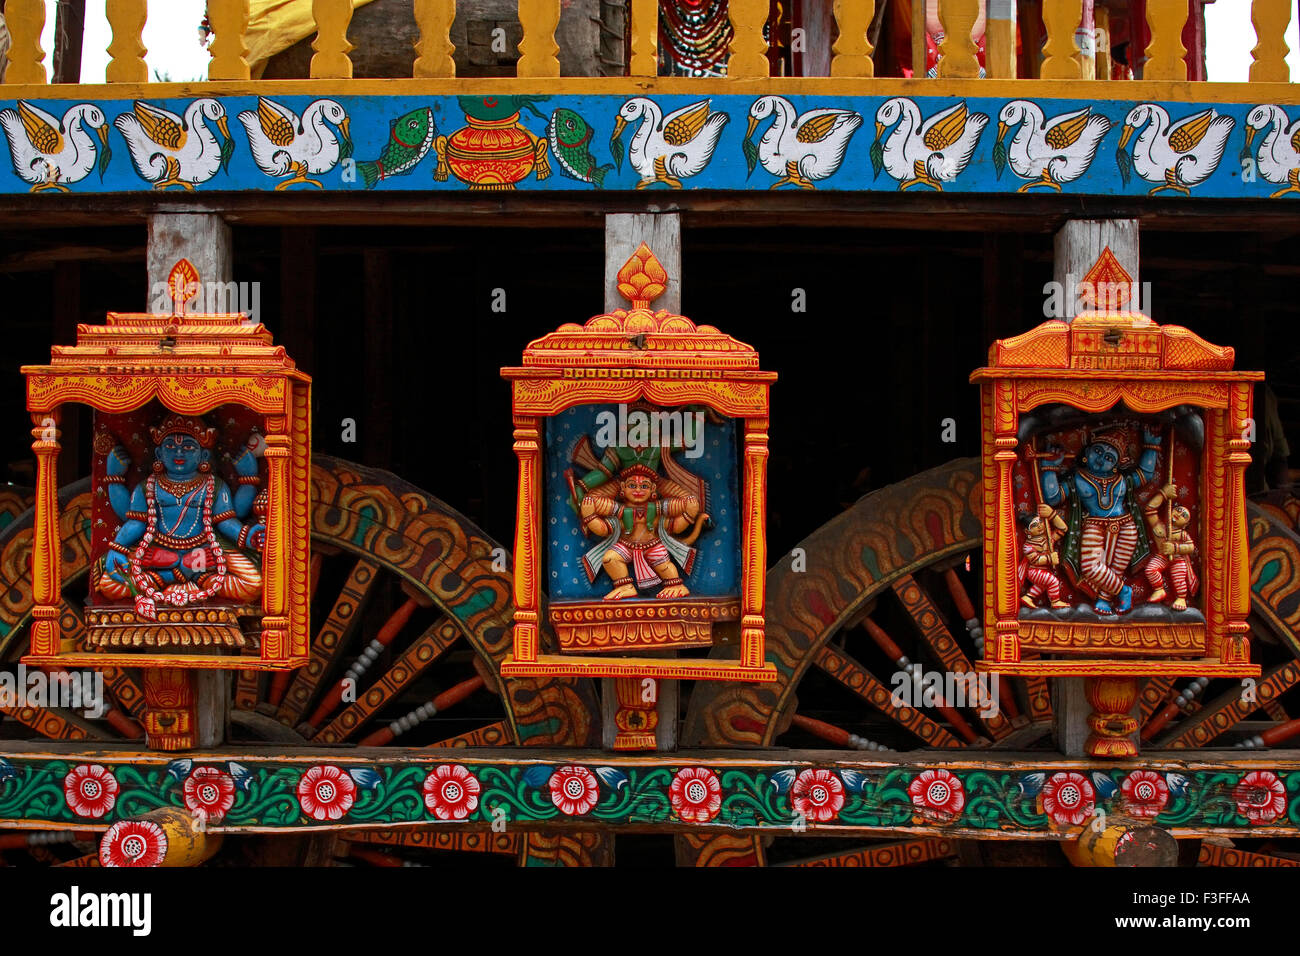 Gods statues on Rath yatra or Cart festival of Jagannath ; Puri ; Orissa ; India - Stock Image